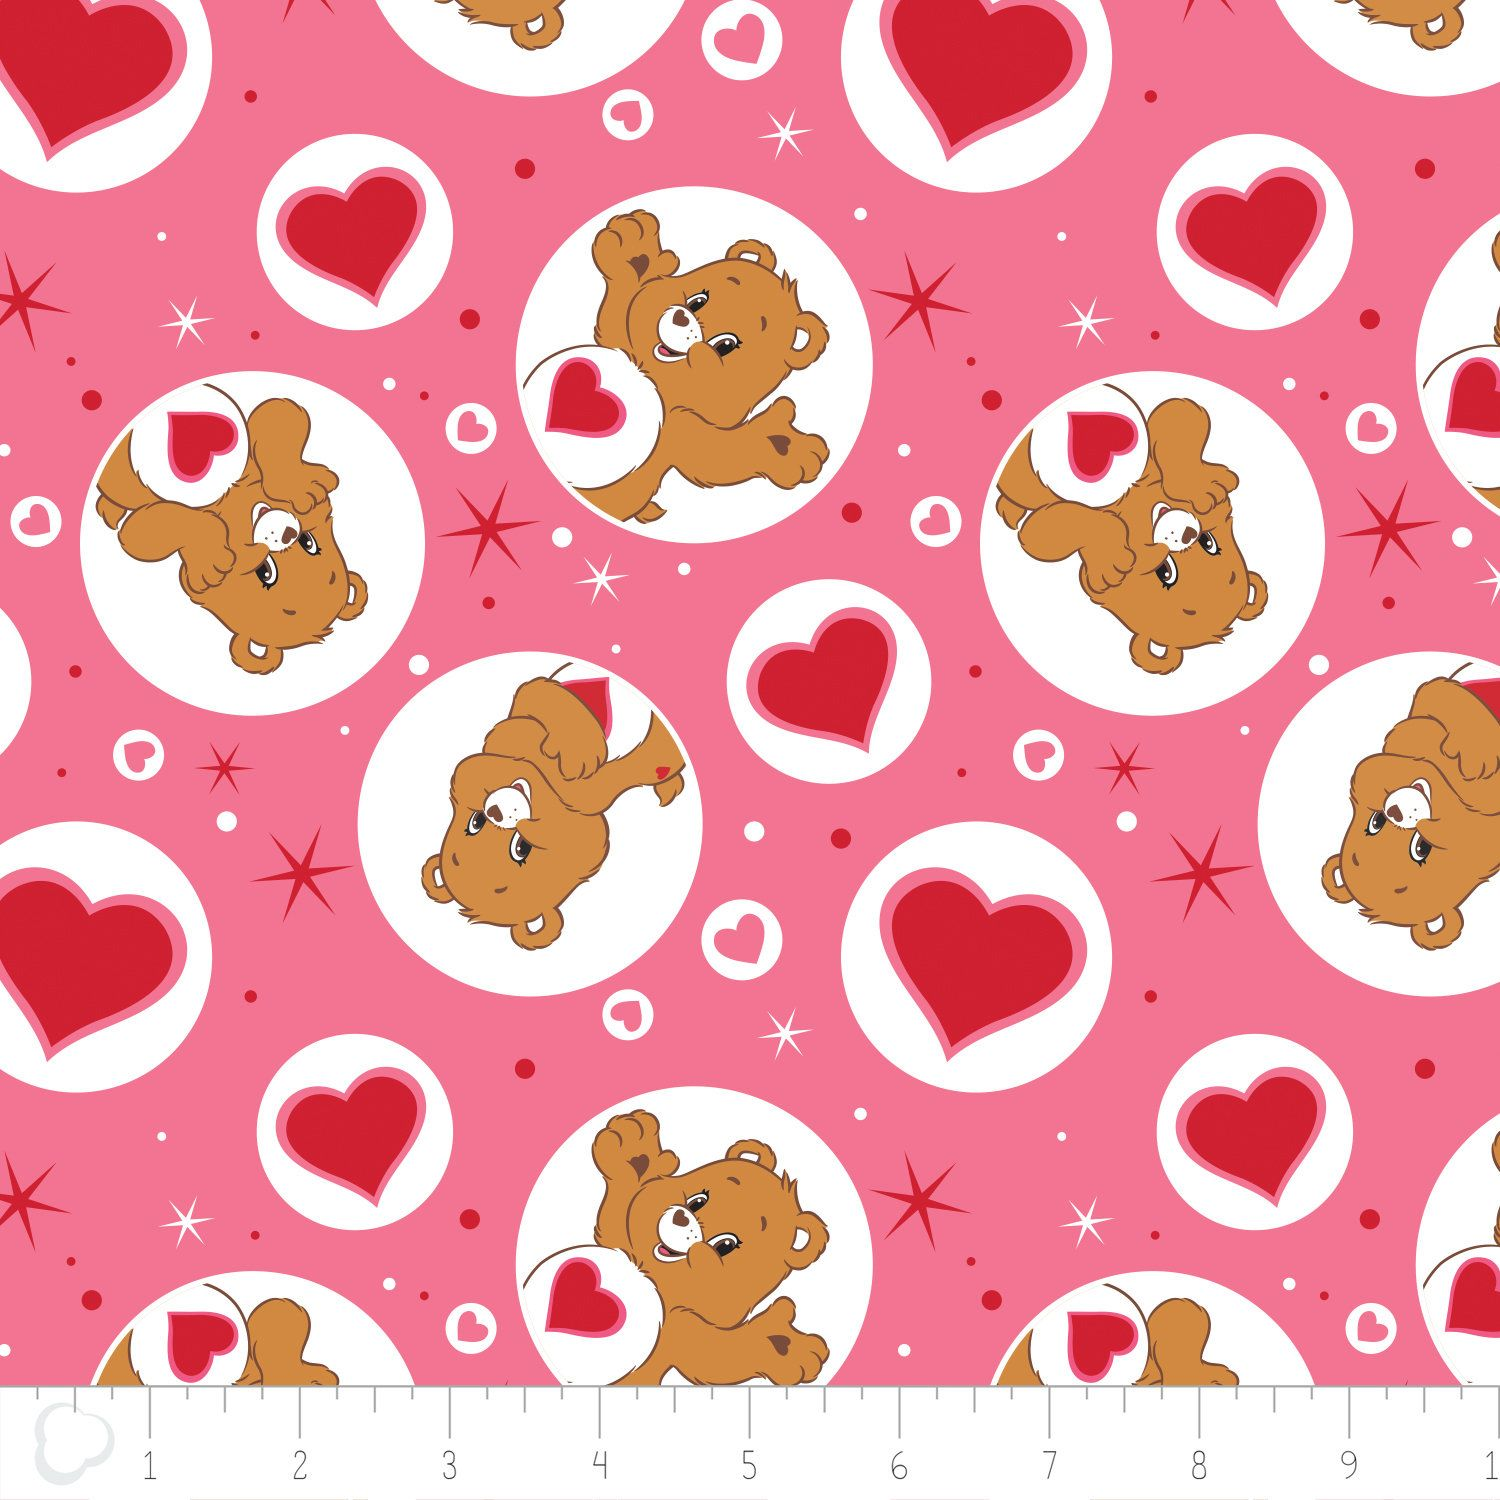 Camelot Carebears 44010102 1 White Belly Badge Cotton Fabric FREE US SHIPPING